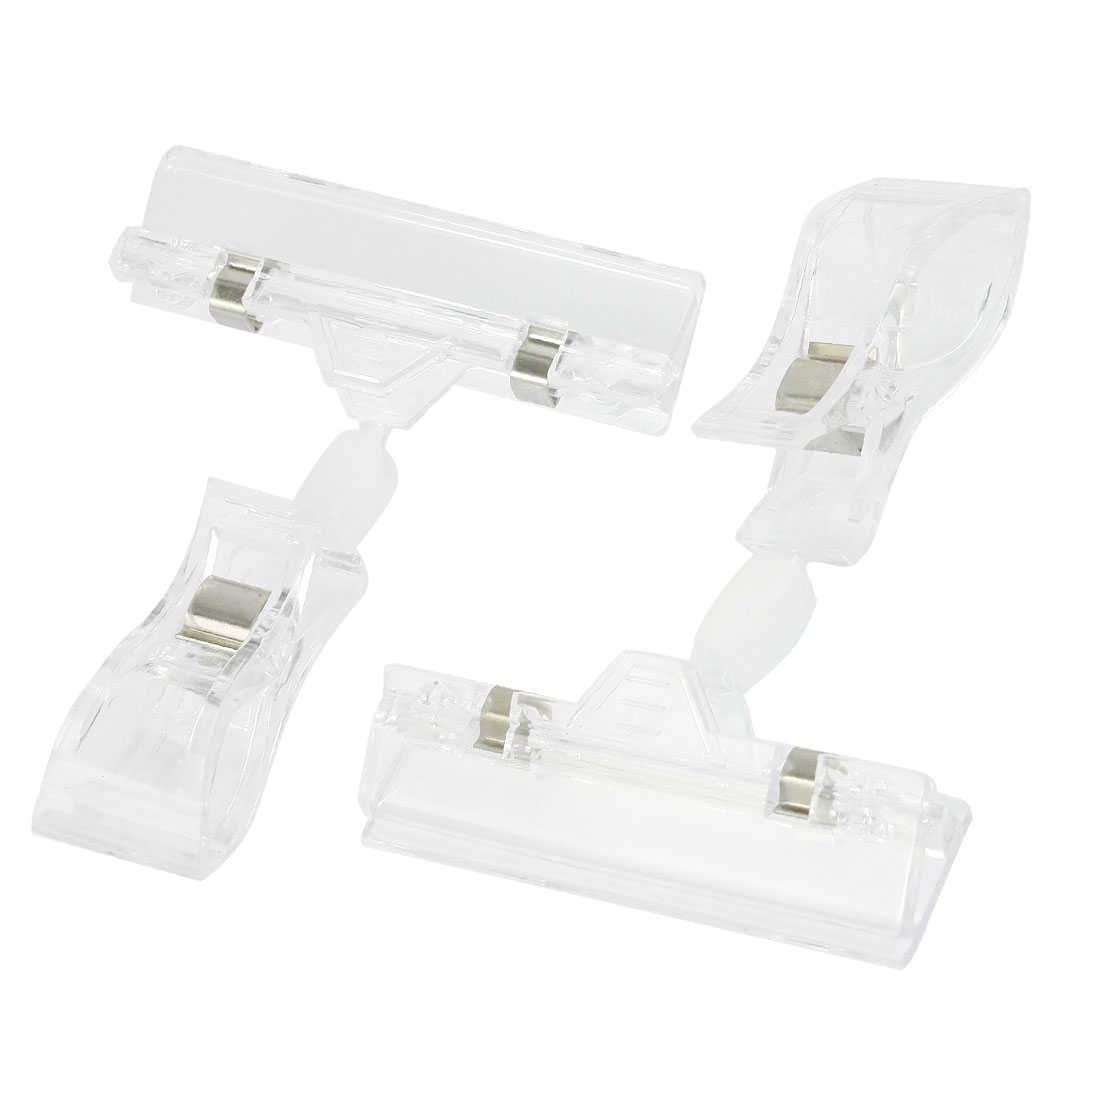 2 Pcs Double End Retail Stores Clear Advertising Display Pop Sign Clips Clamp